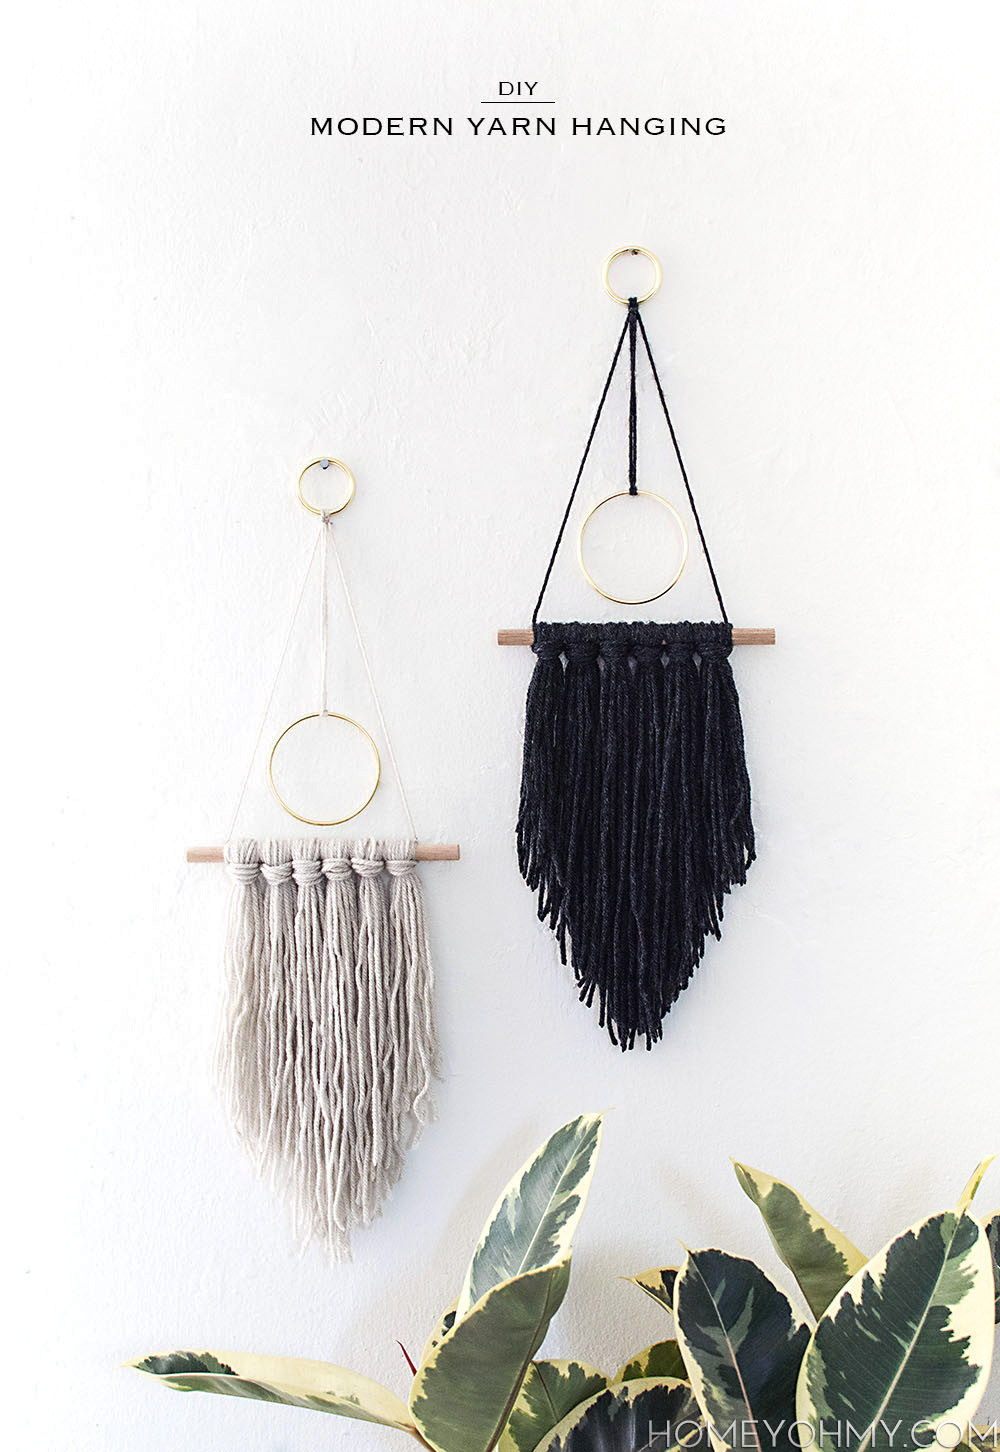 Diy Modern Yarn Hanging Homey Oh My